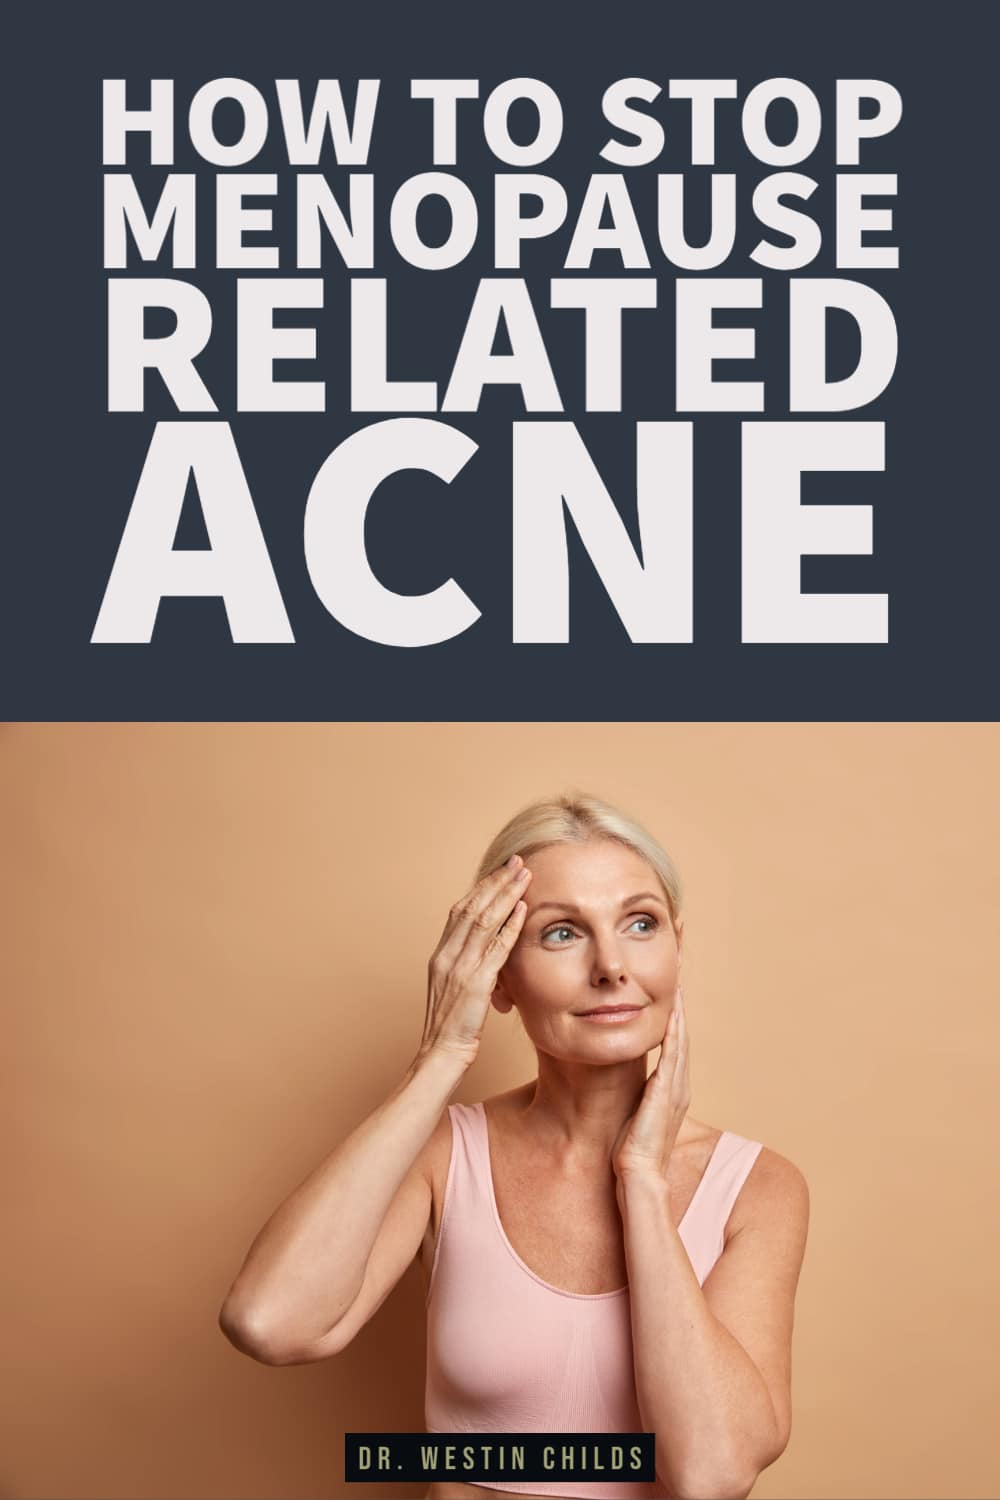 how to stop menopause related acne